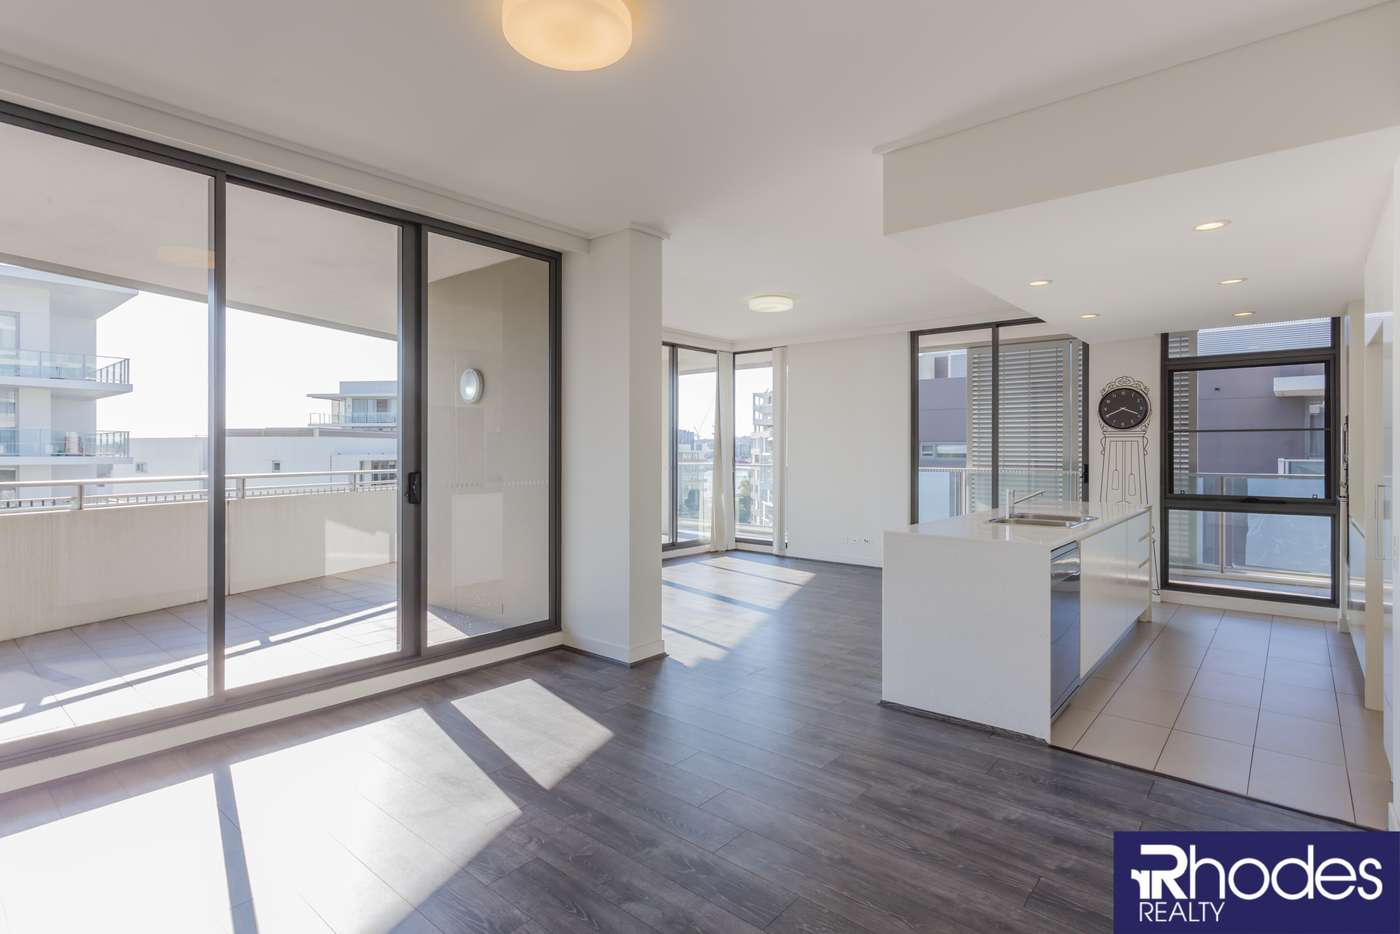 Main view of Homely apartment listing, 605/15 Shoreline Dr, Rhodes NSW 2138